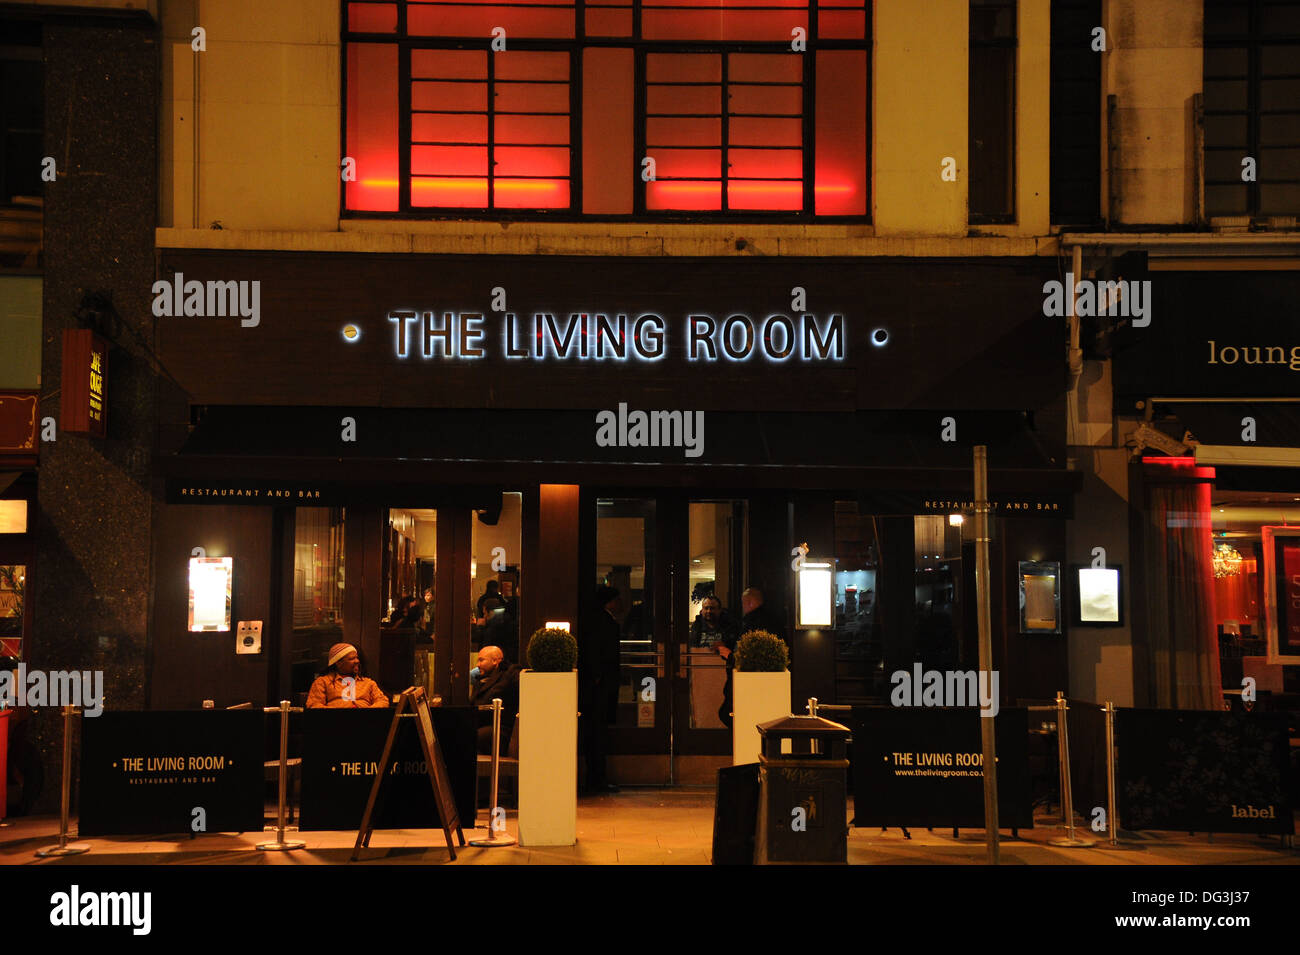 The Living Room Restaurant Living Room Restaurant And Bar At Night Manchester Uk Stock Photo